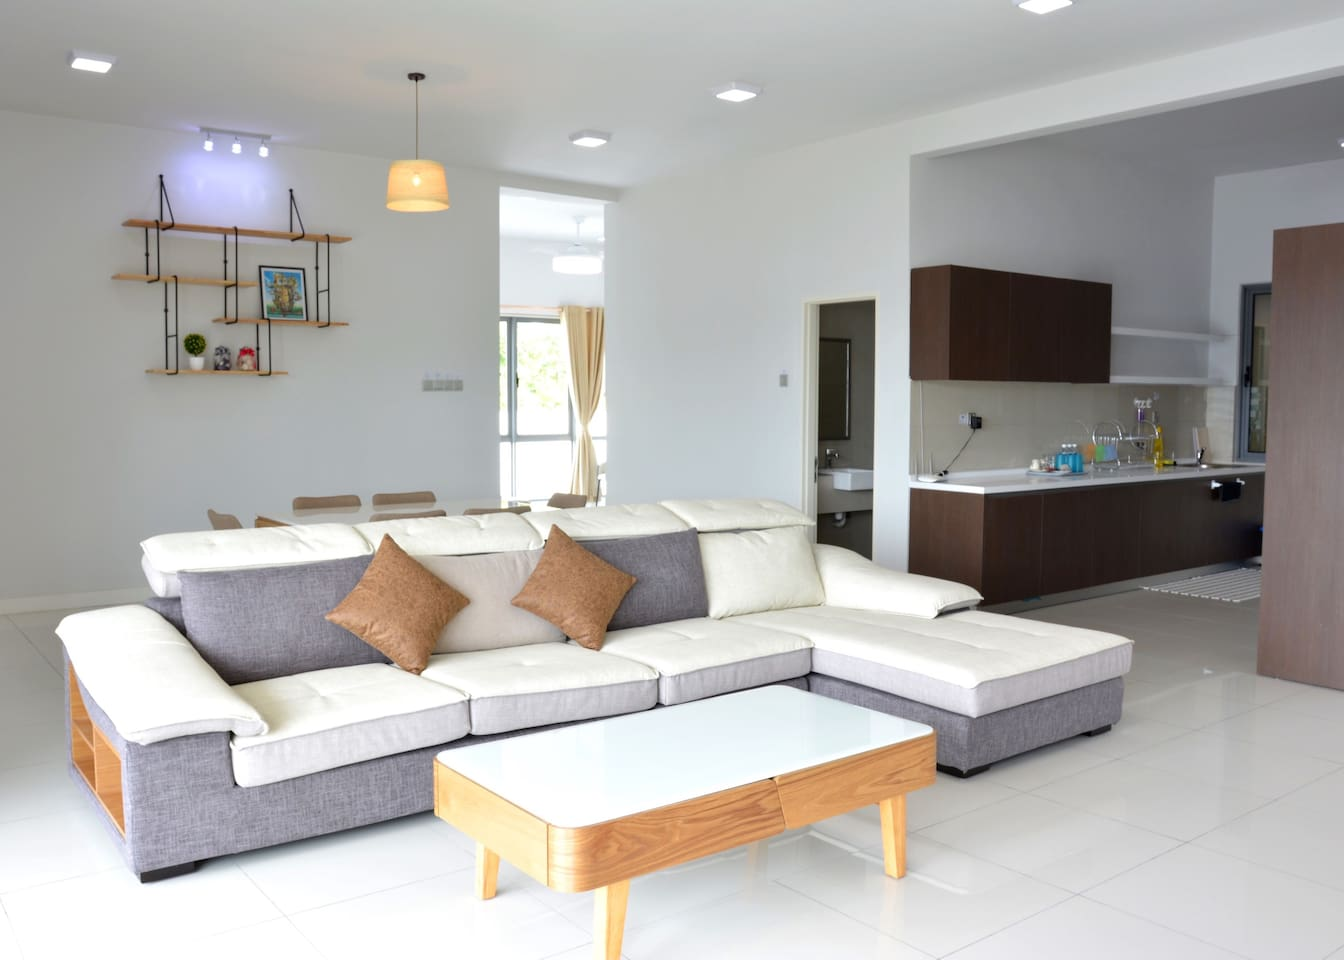 Full View of Living Room & Kitchen Area   客厅和厨房